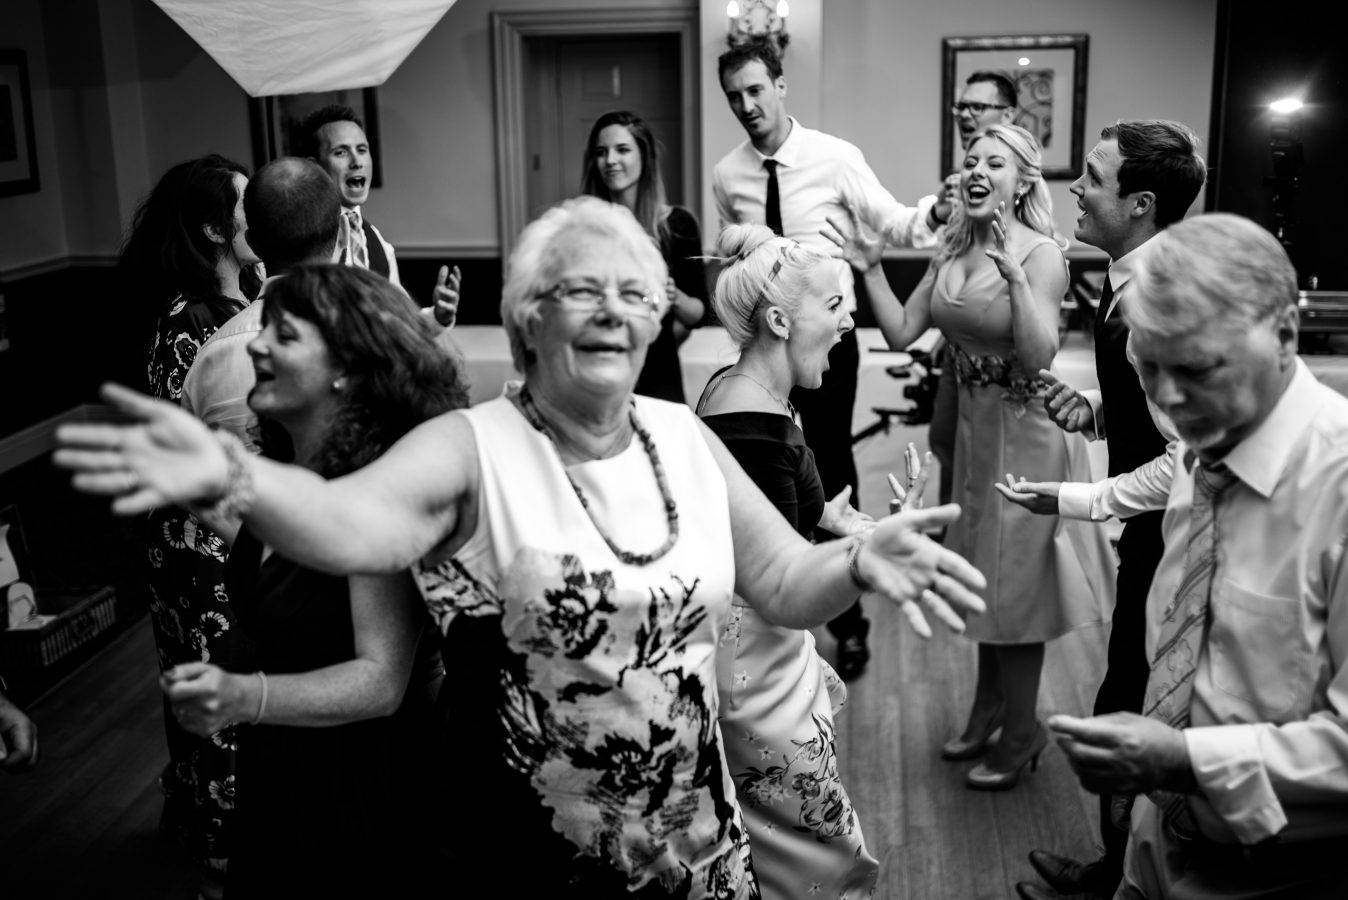 young-and-old-dance-dunkenhalgh-hotel-wedding